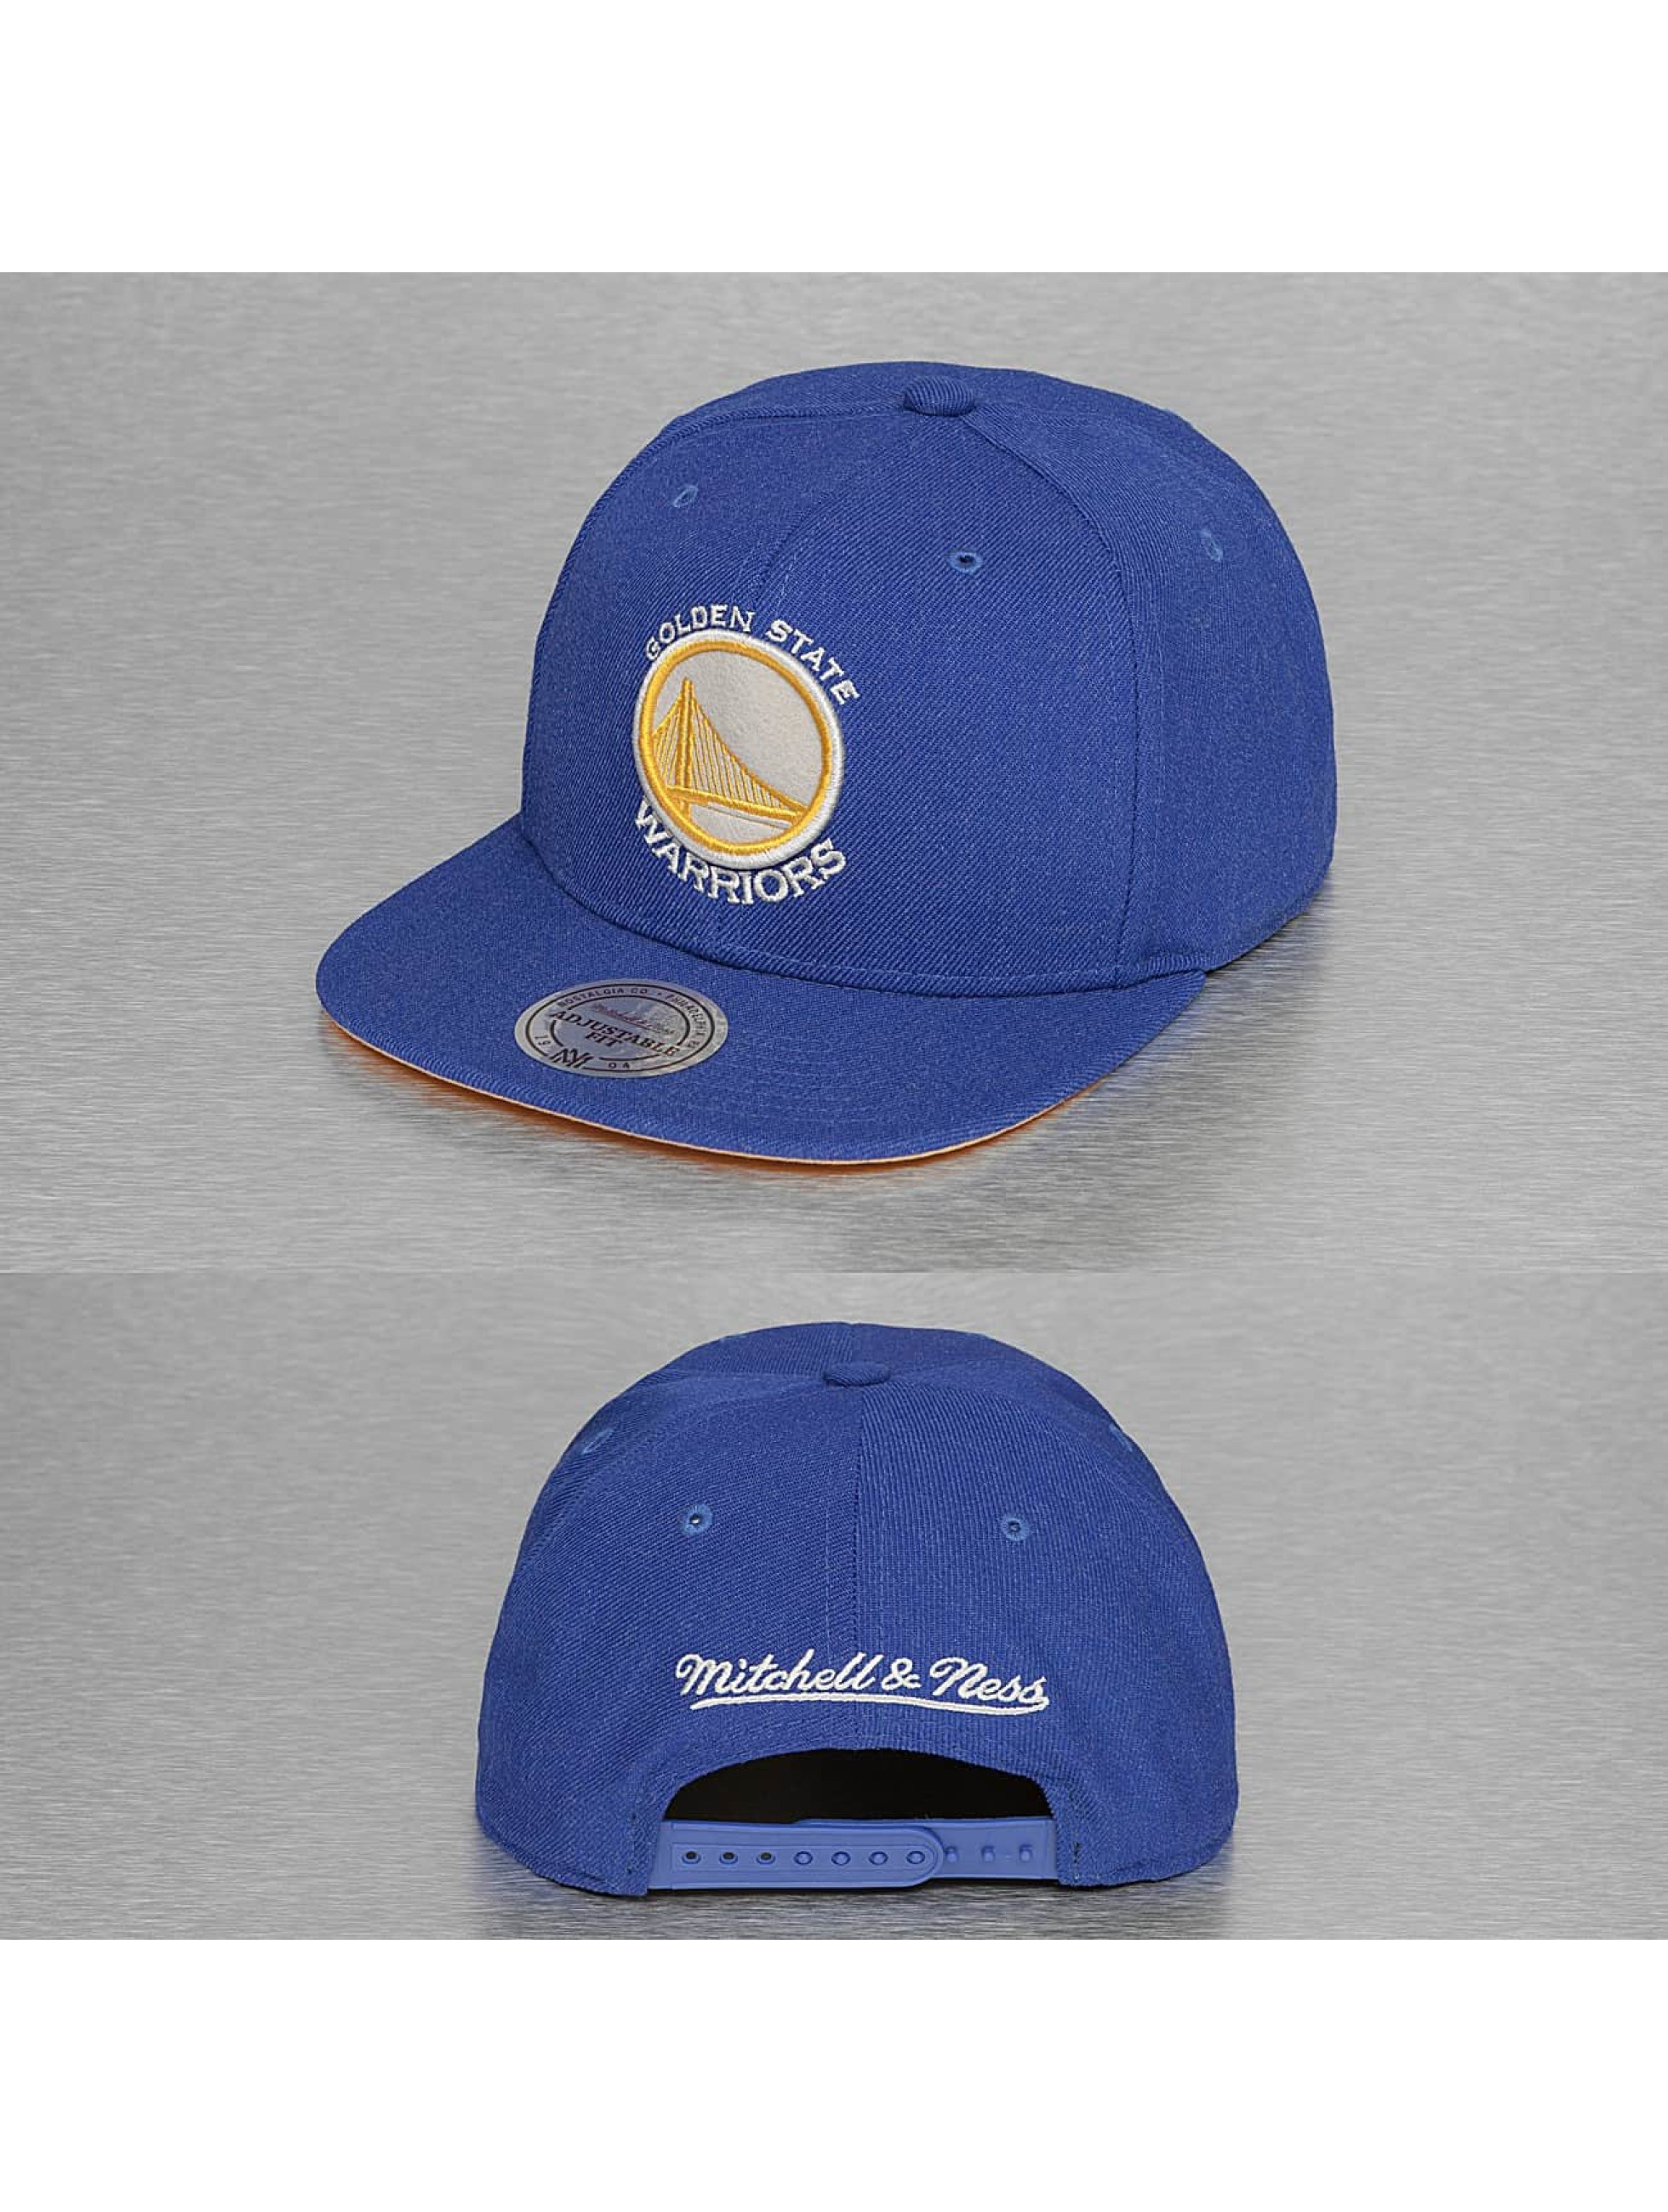 Mitchell & Ness Männer,Frauen Snapback Cap NBA Team Heather in blau